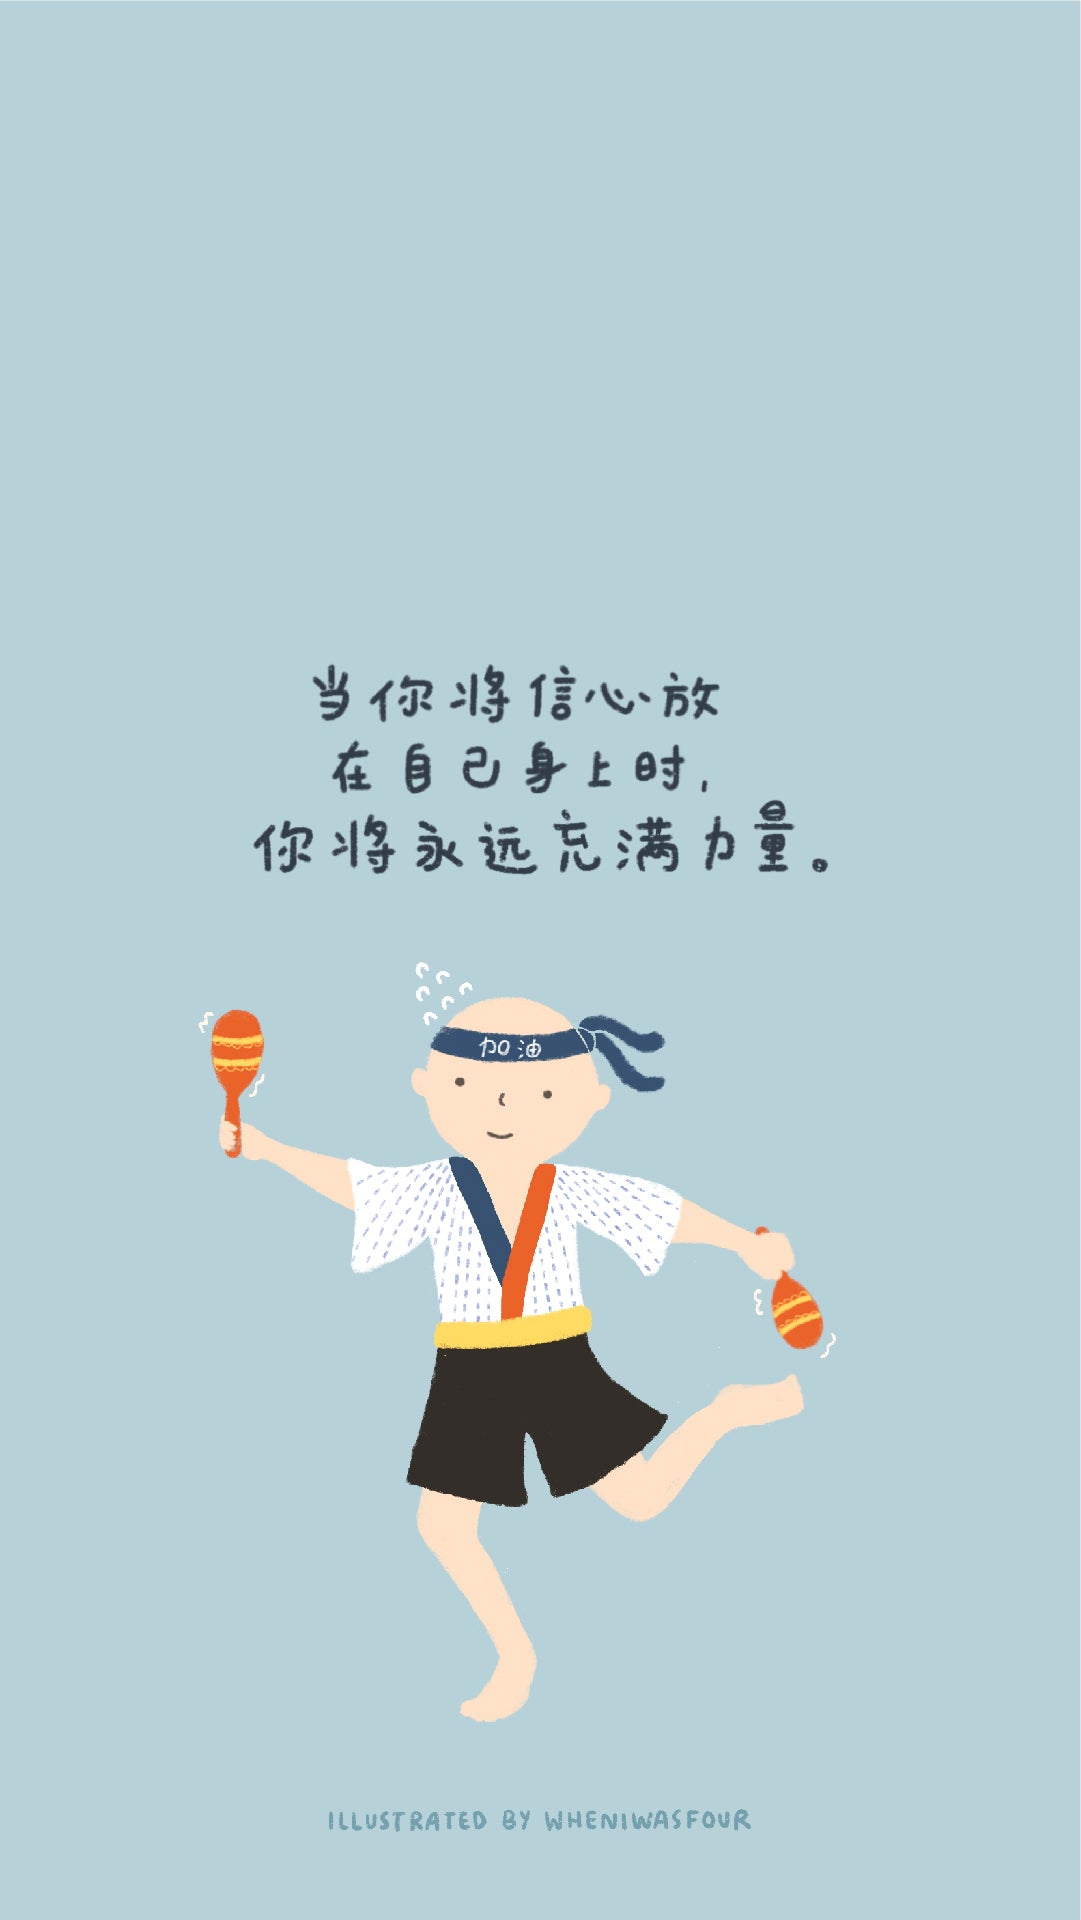 phone wallpaper of a digital illustration of a man in a traditional japanese costume holding two shakers cheering along with a chinese quote about believing in yourself